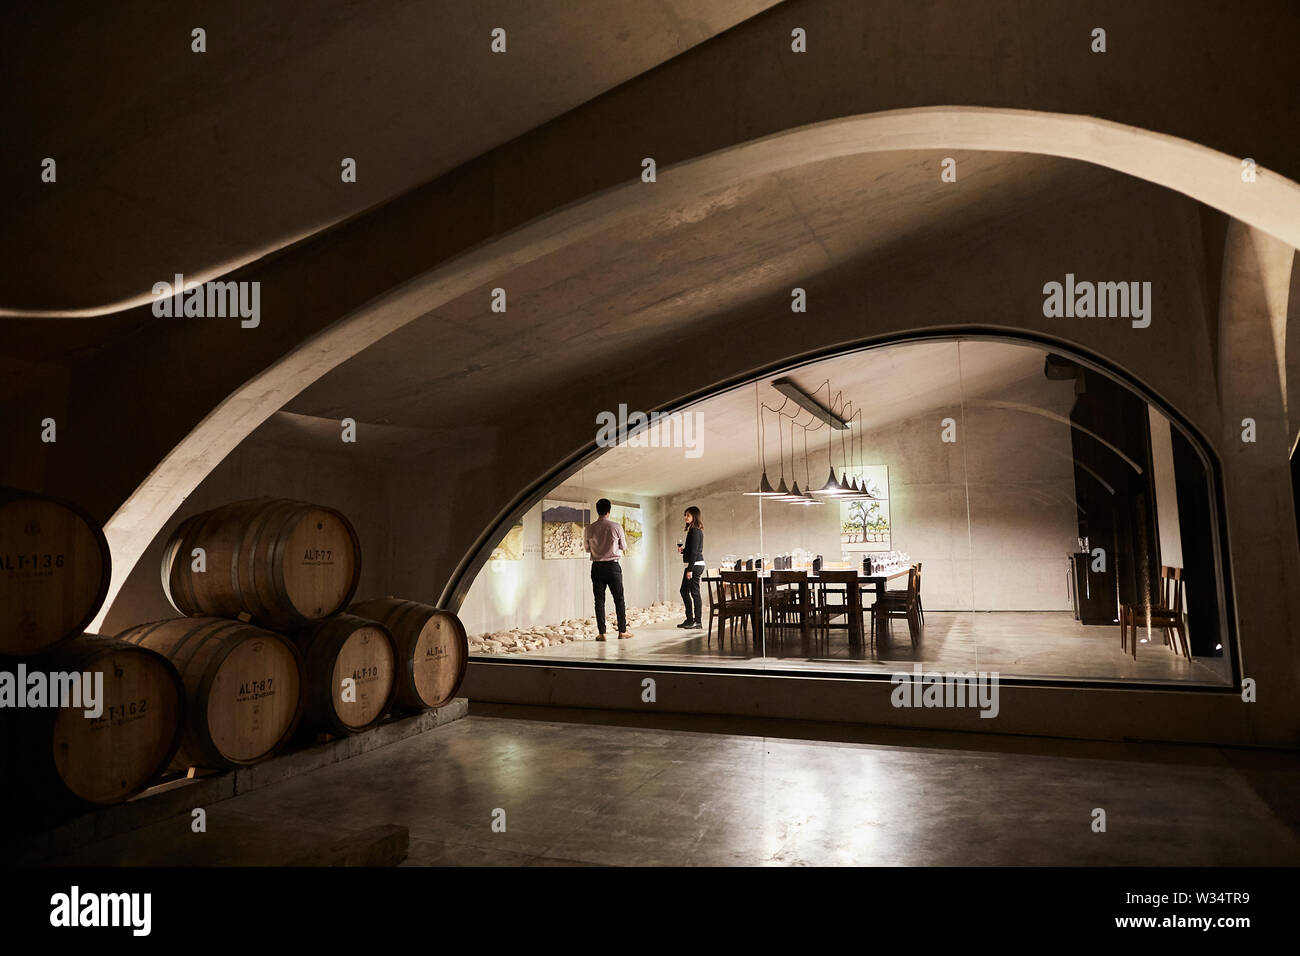 11 July 2019, Argentina, San Carlos: Two visitors drink in the wine cellar of Piedra Infinita. The Argentinian winery Piedra Infinita of the brand Zuccardi, was awarded by the World's Best Vineyards Academy as the best winery and winery in the world. This award recognizes the best 50 wineries in the world, based on the experience offered to the visitor. Photo: Marcelo Aguilar/dpa - Stock Image